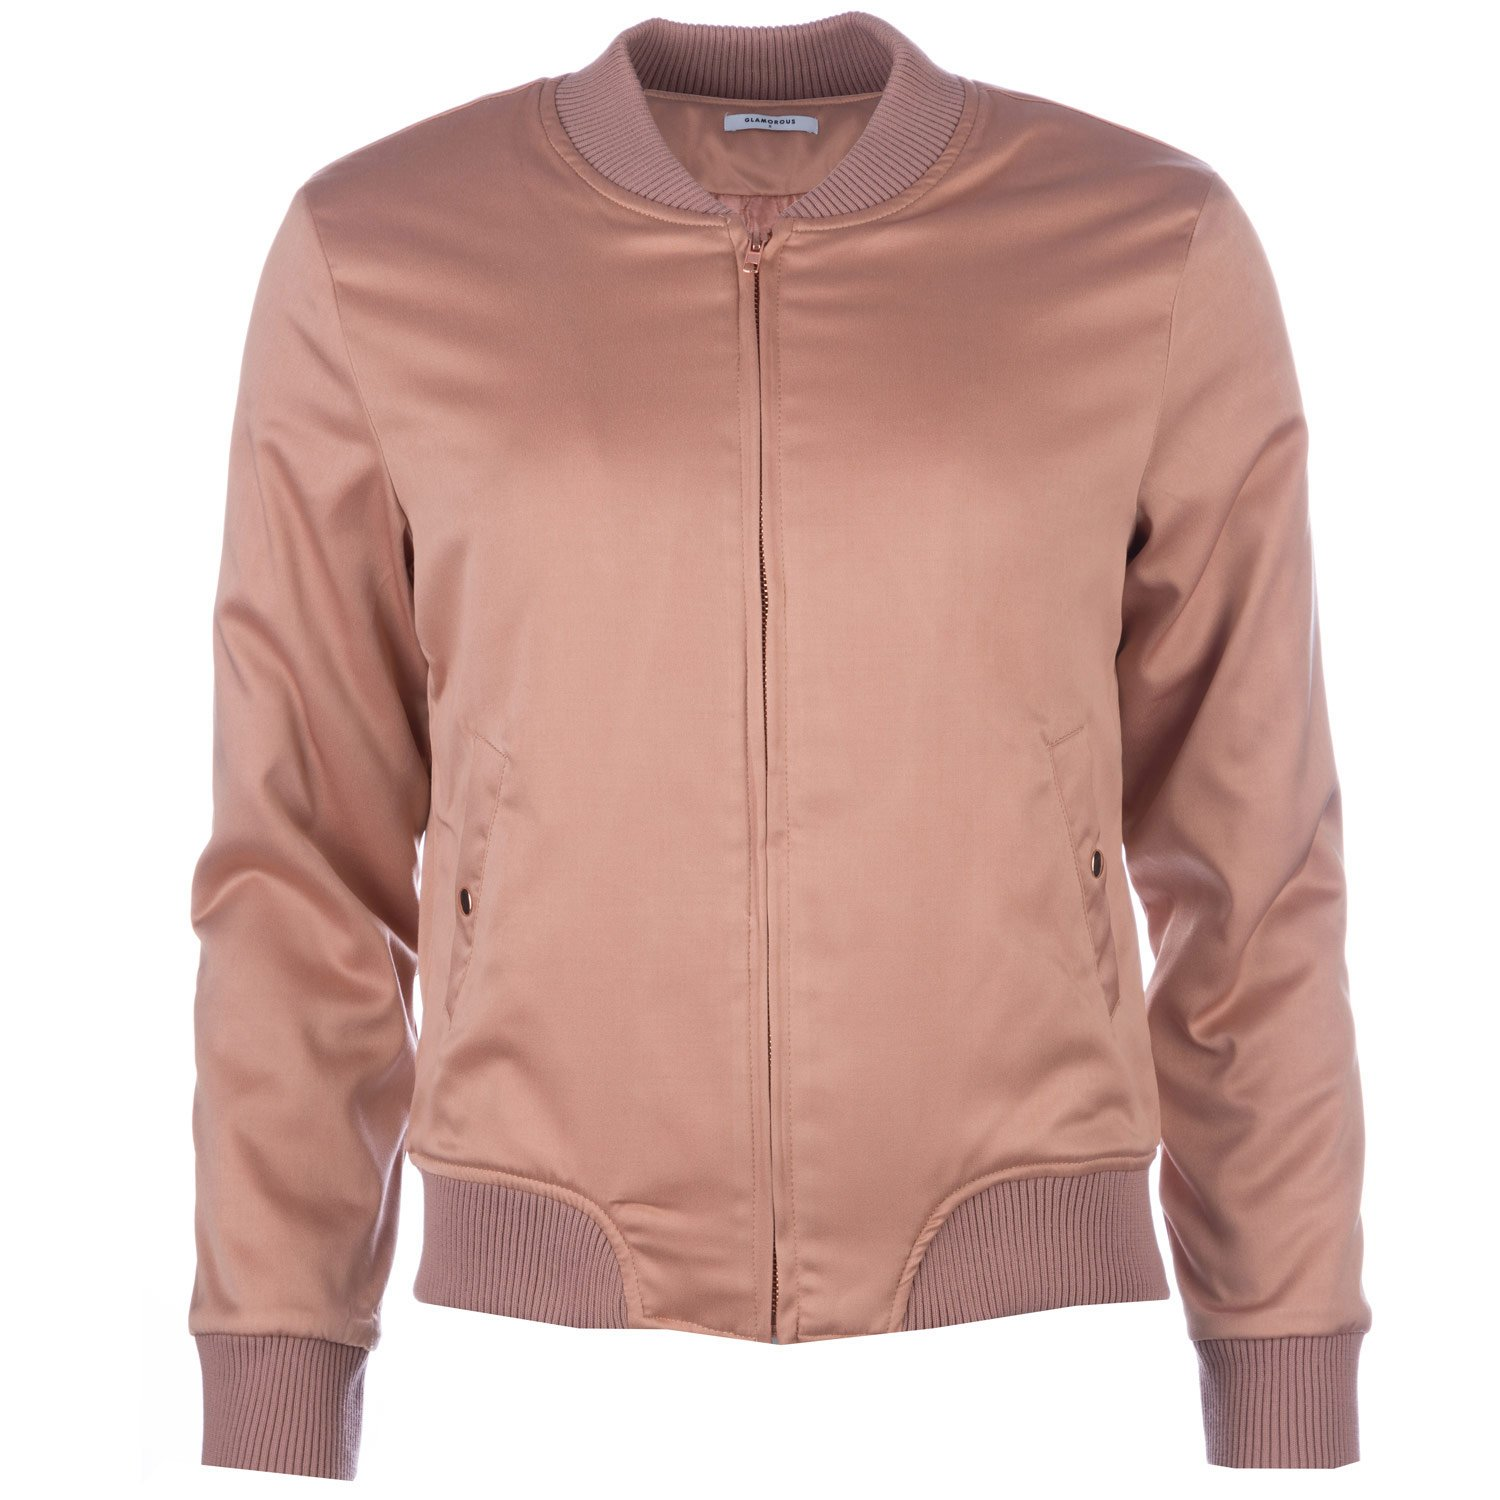 7b8a88a2f Dusky Pink Glamorous Womens Bomber Jacket - Size : 8: Amazon.co.uk ...